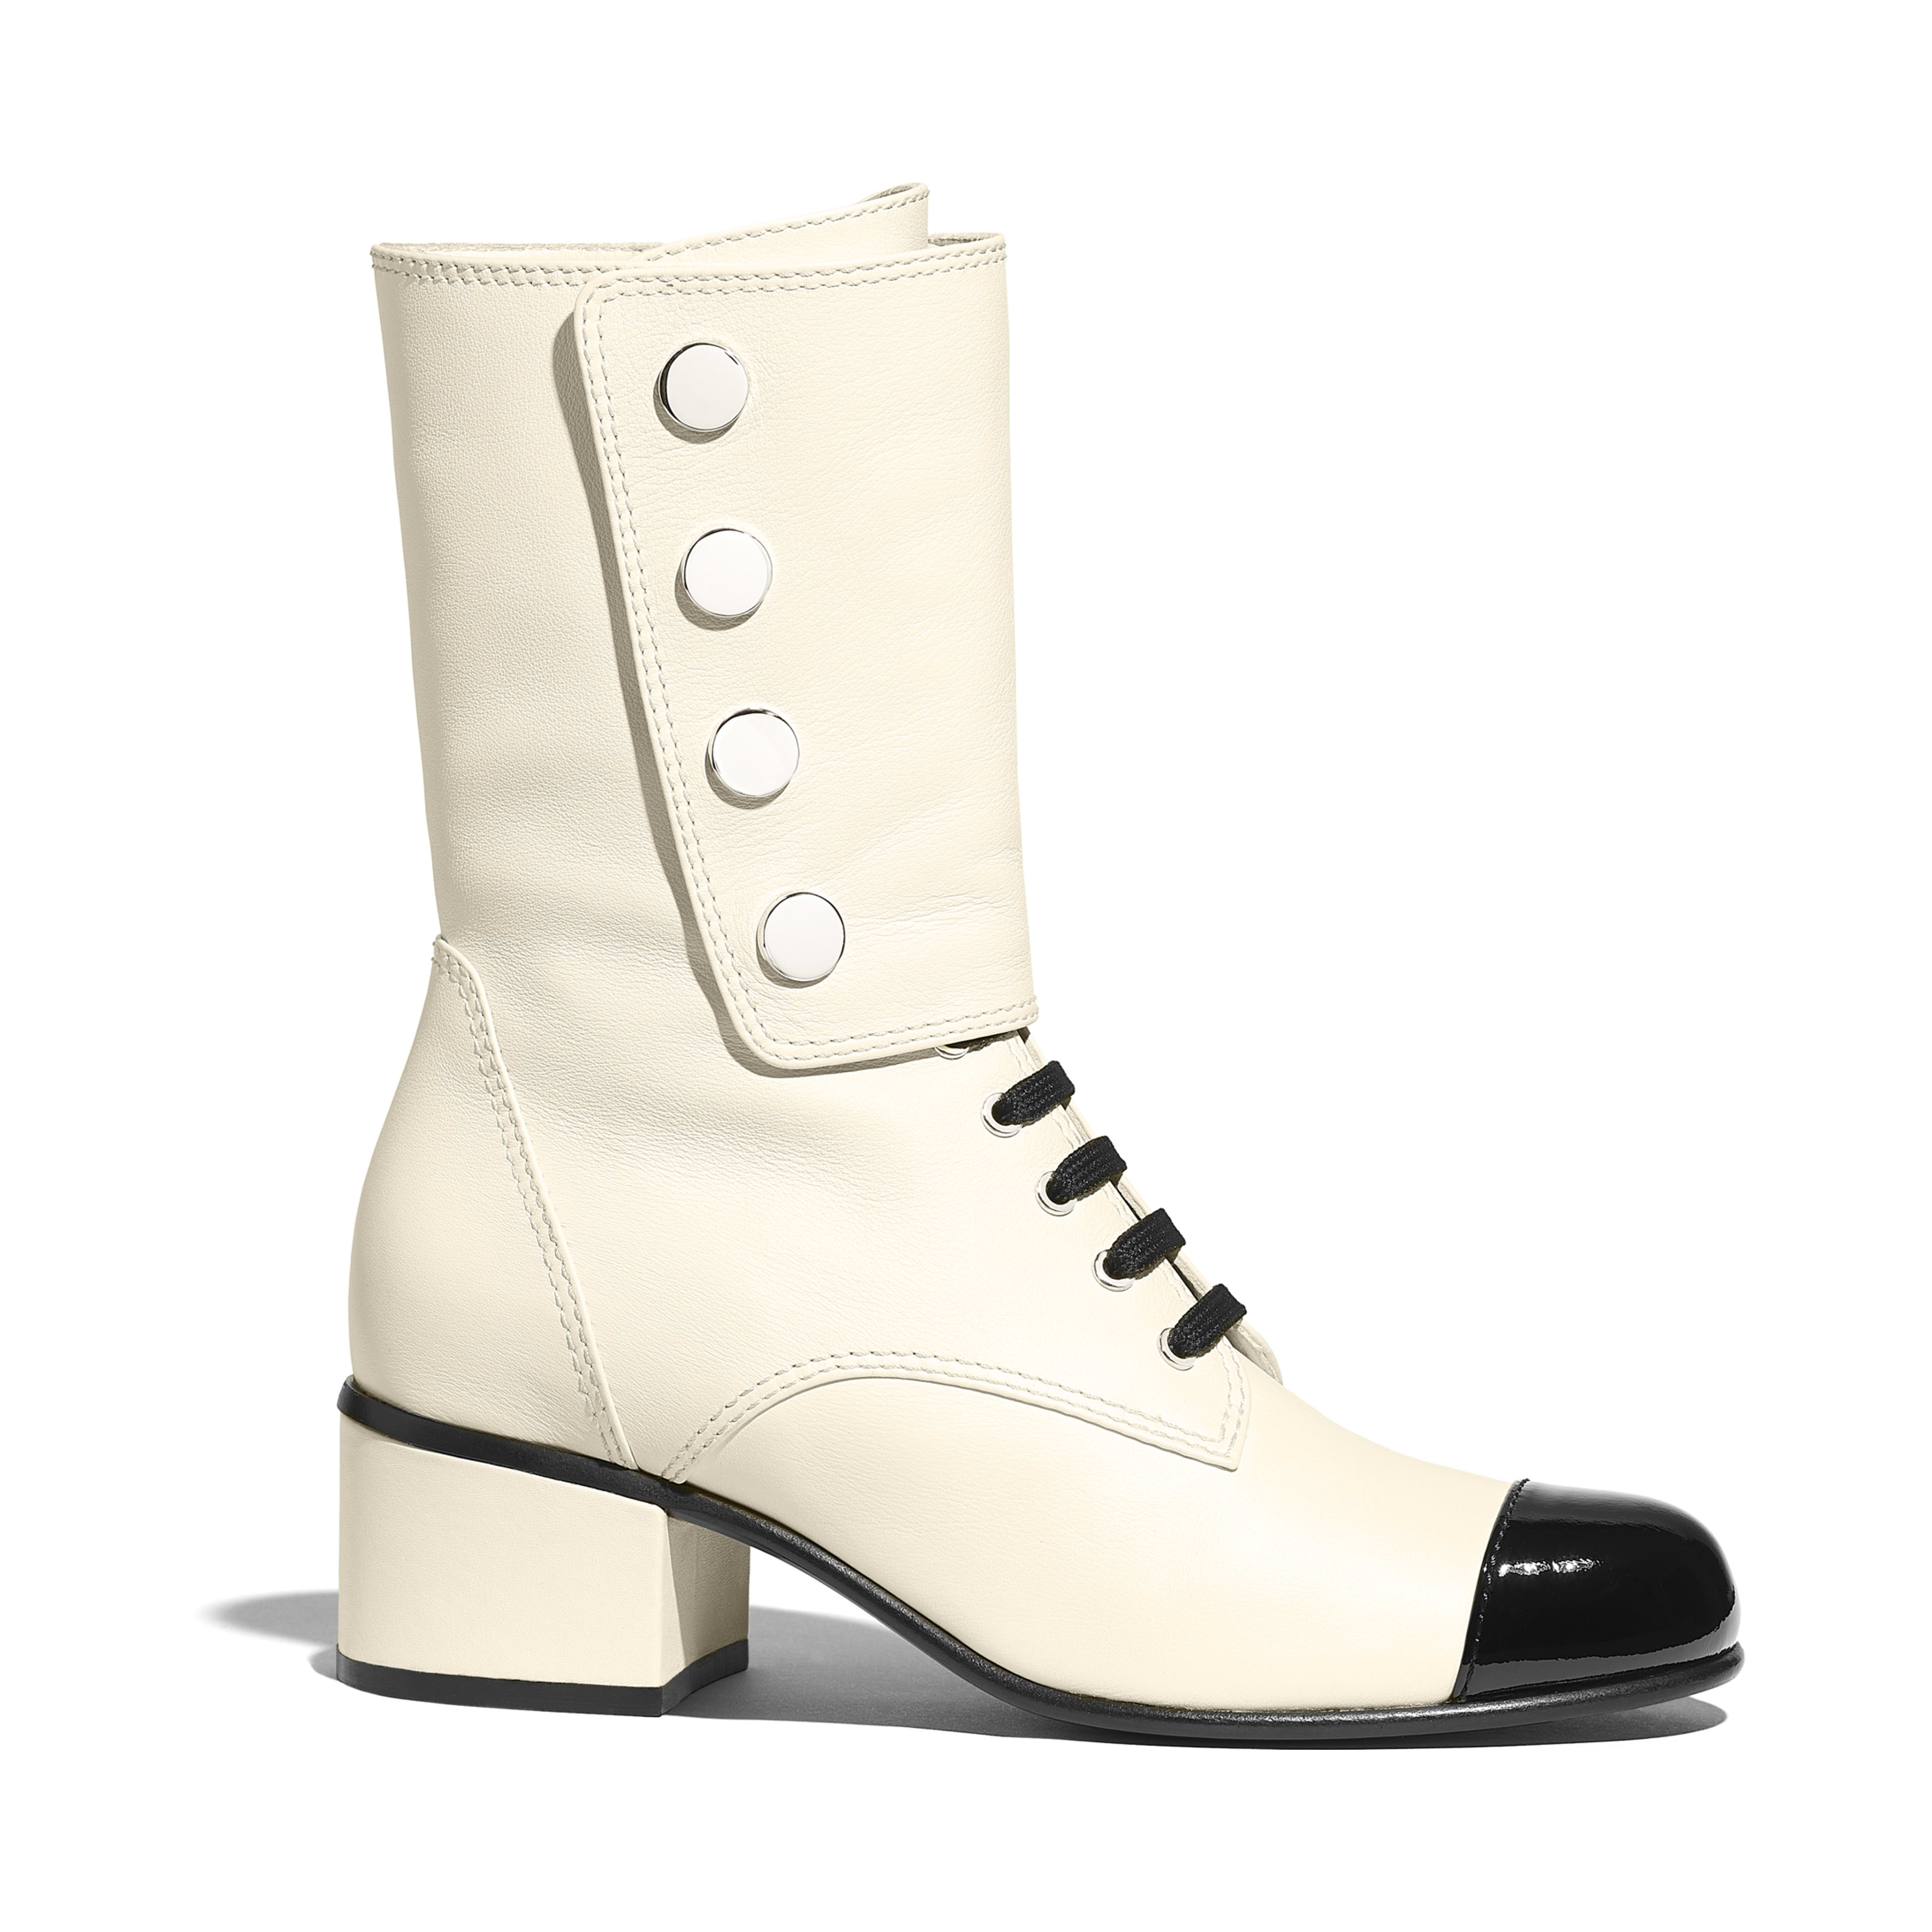 Ankle Boots - Ivory & Black - Calfskin & Patent Calfskin - Default view - see full sized version